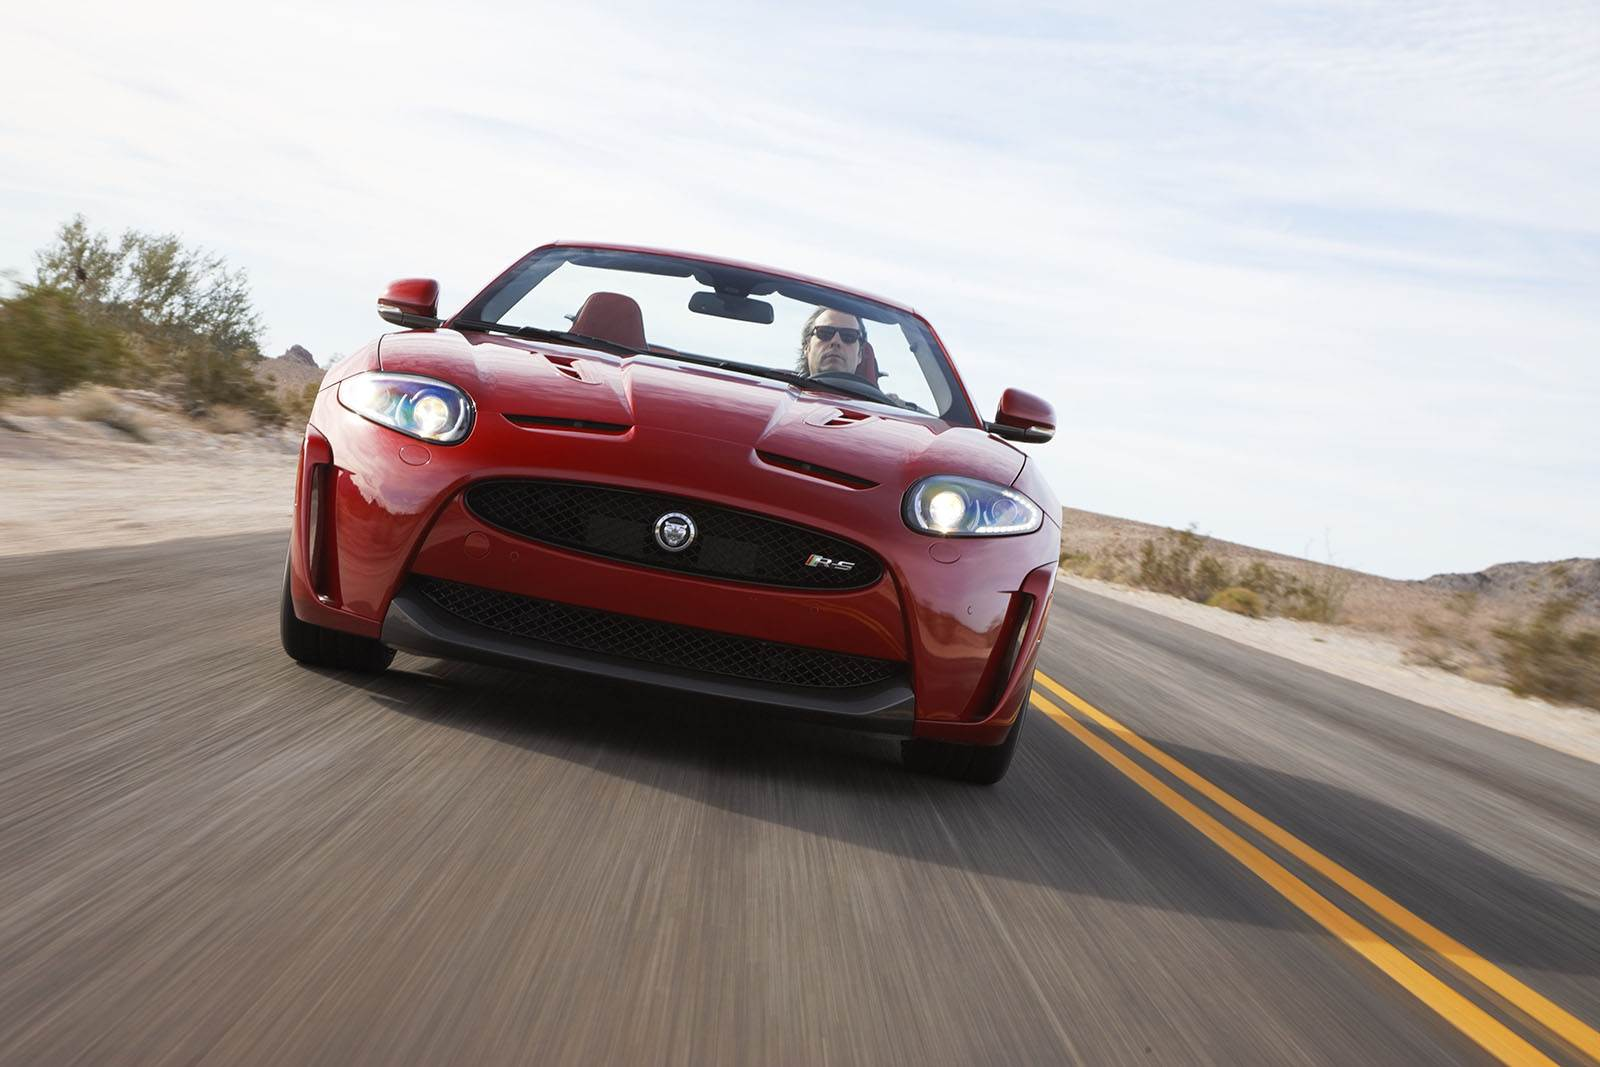 Future Jaguars to get trapezoidal-shaped grille